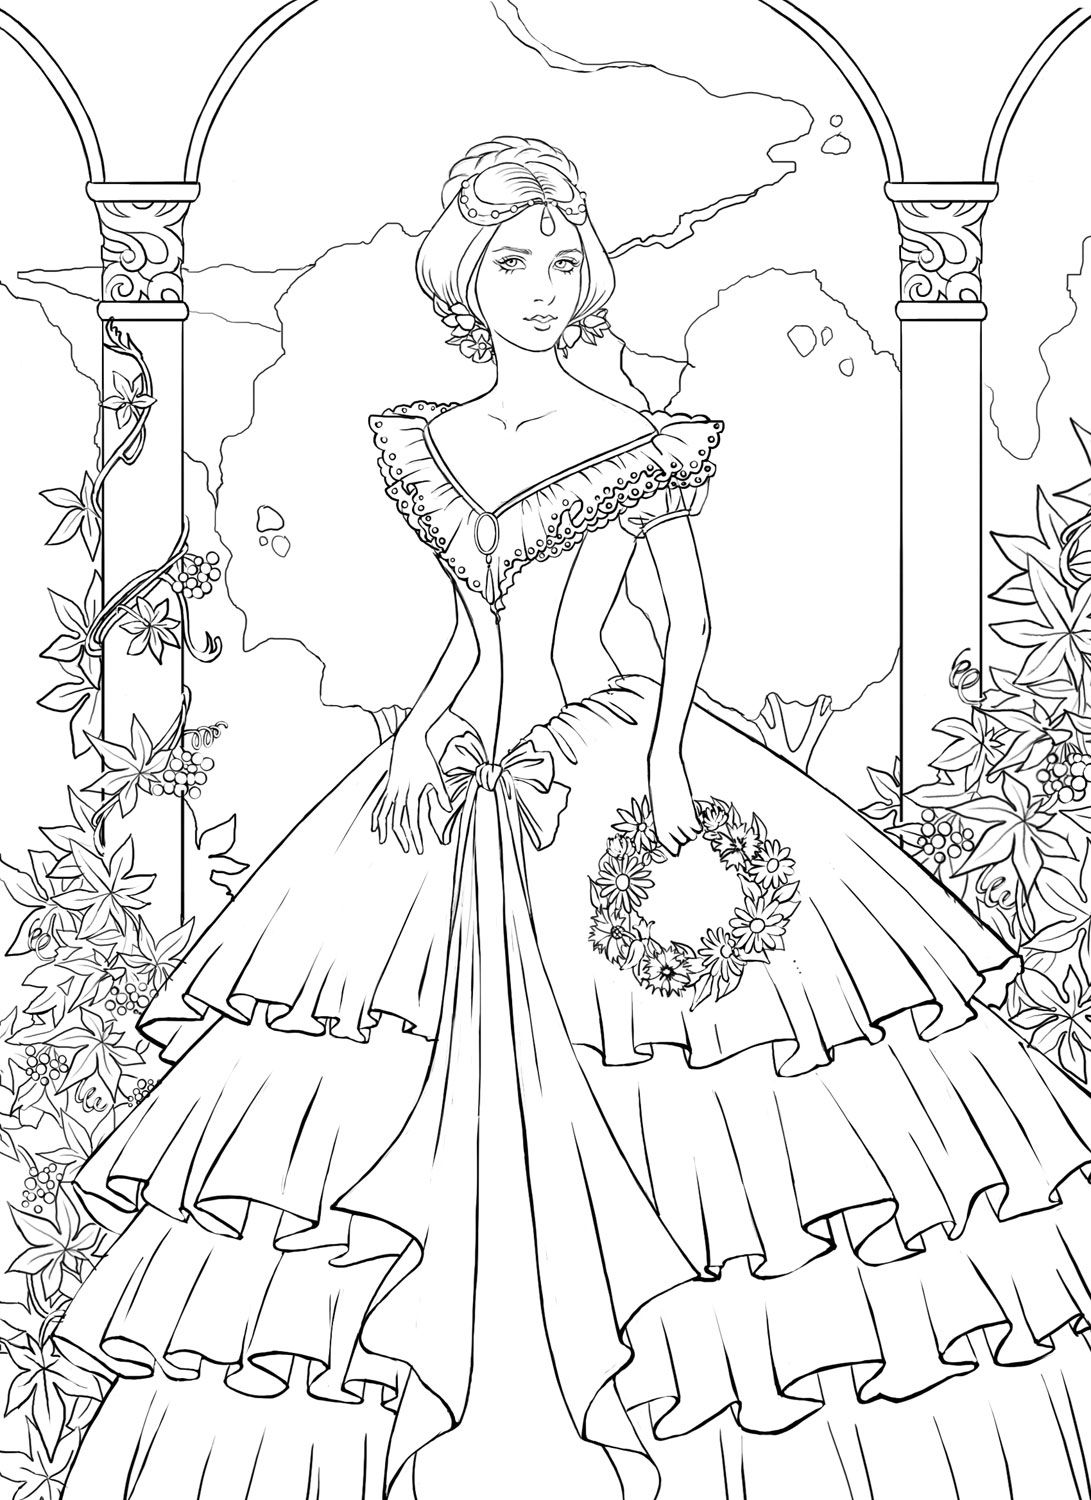 coloring pages for seniors 50 printable adult coloring pages that will make you for coloring pages seniors